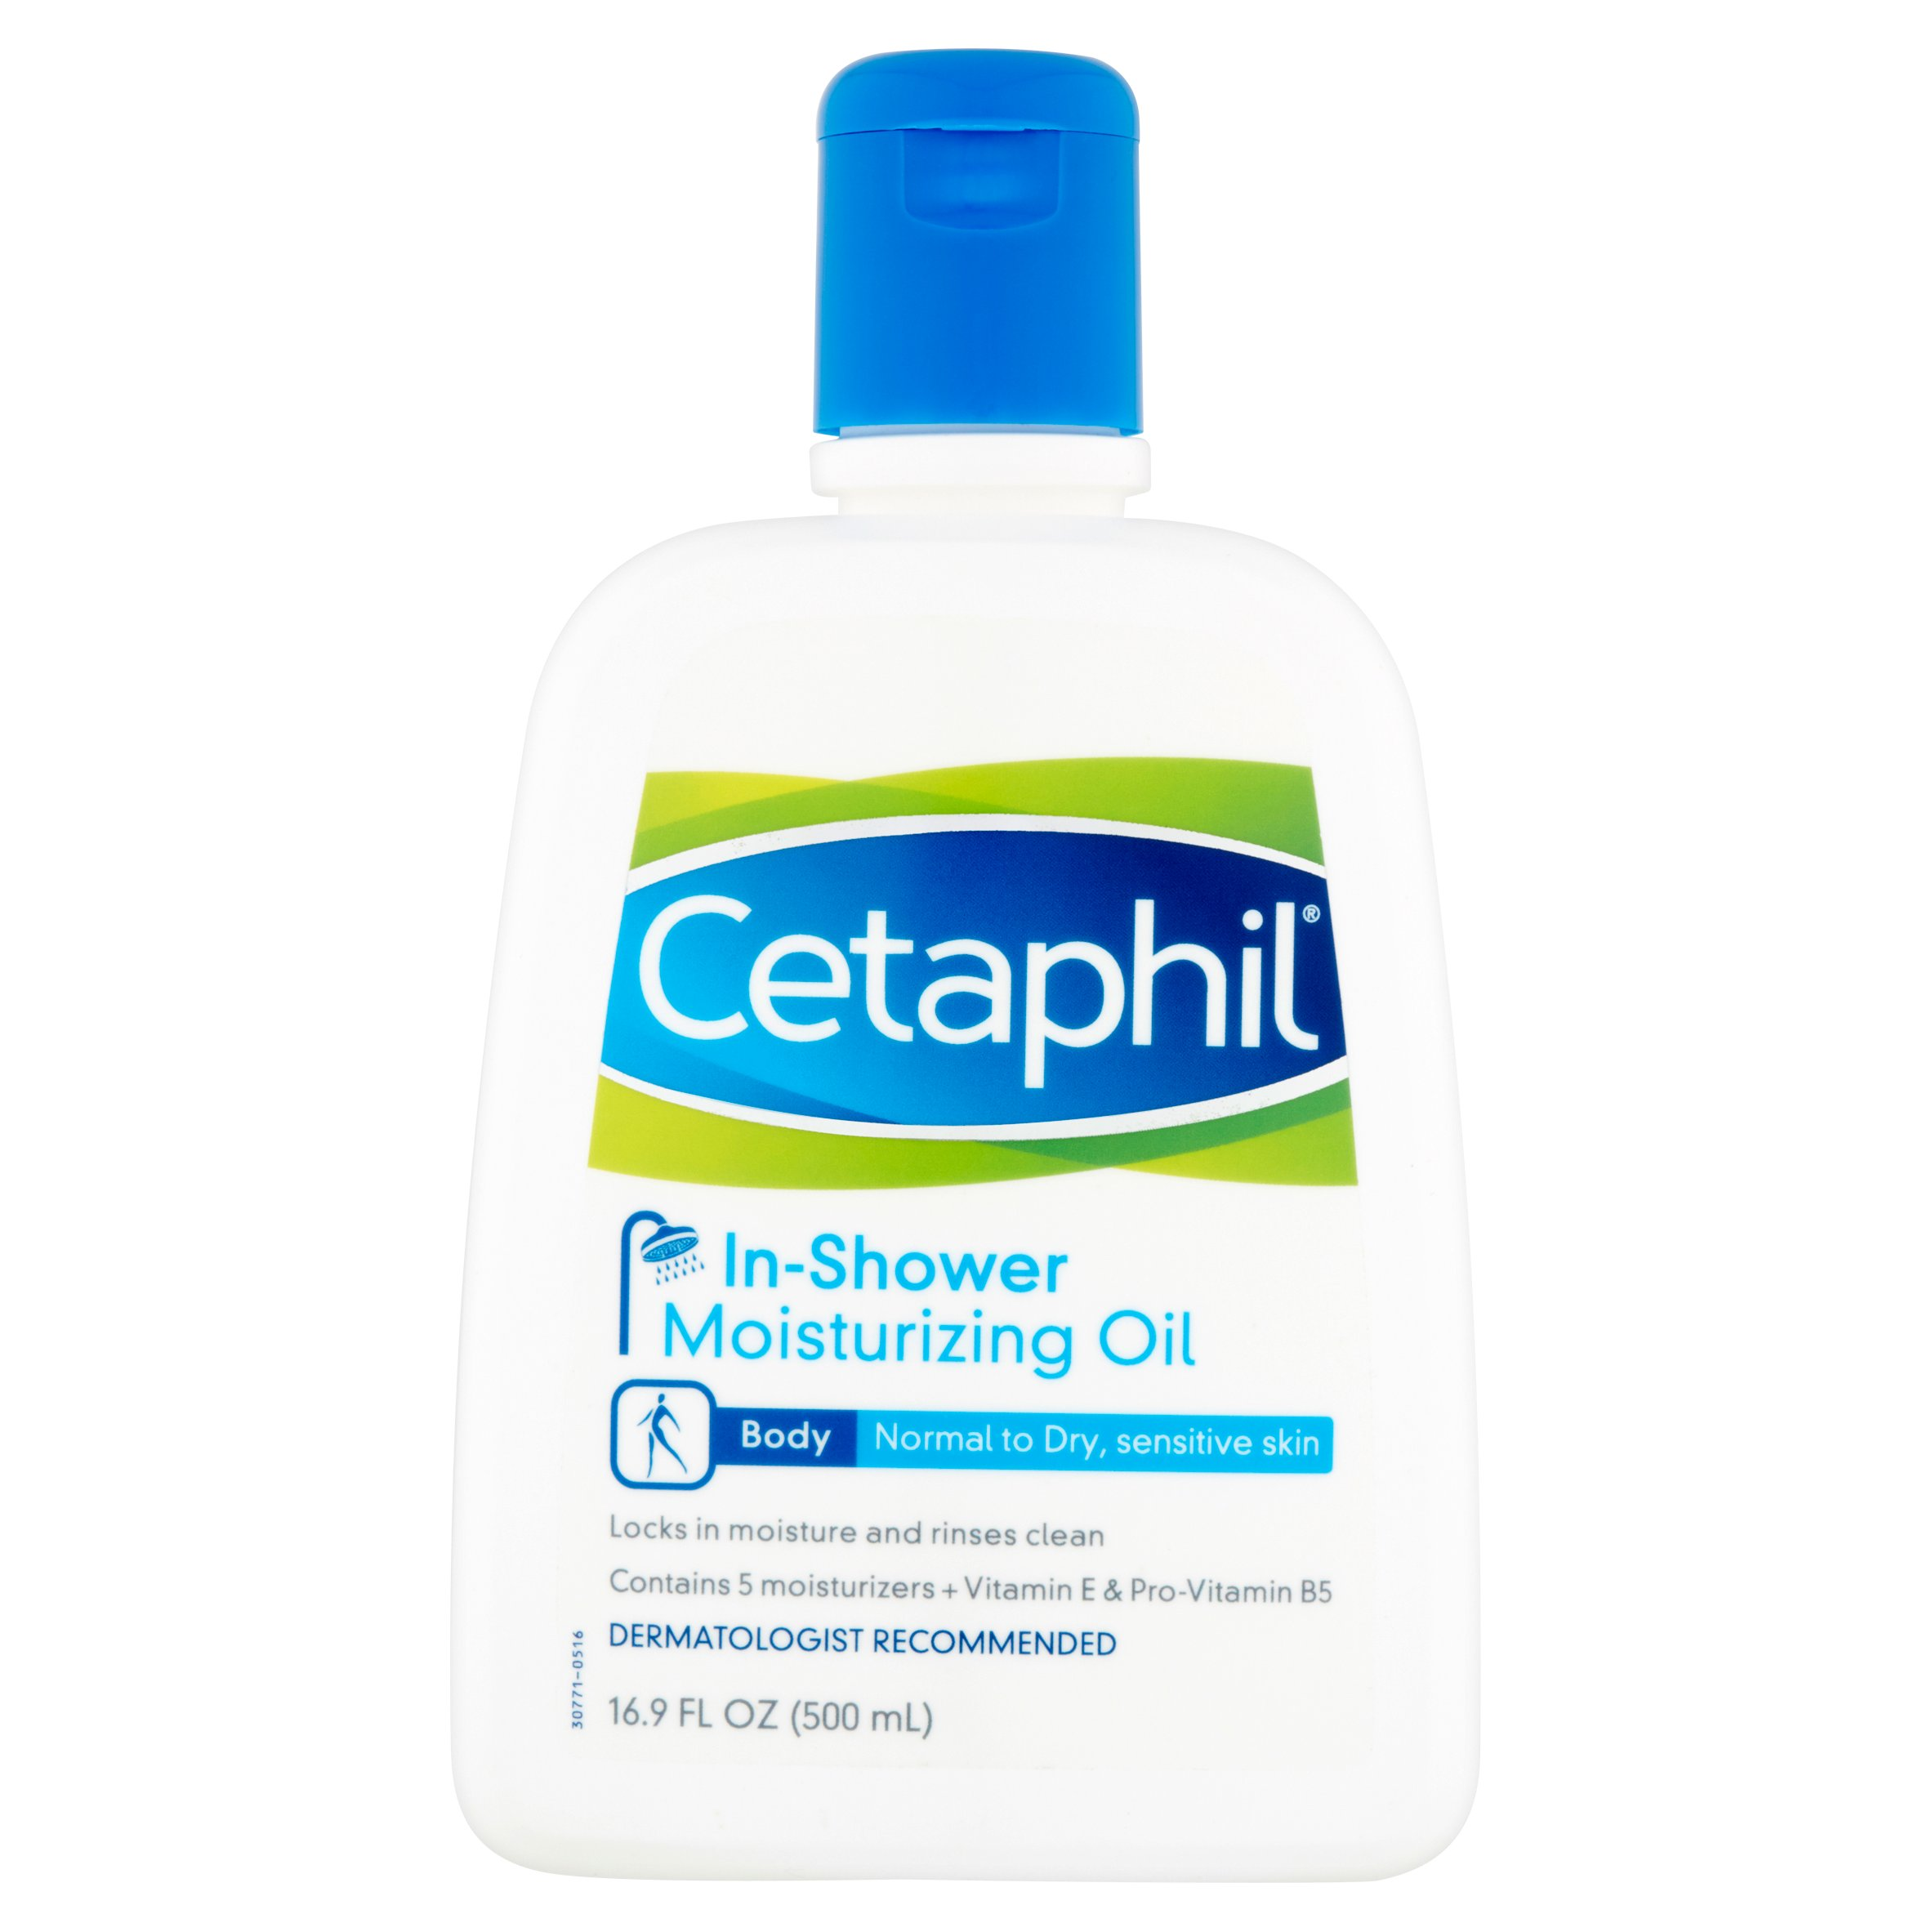 Cetaphil In-Shower Moisturizing Oil, 16.9 fl oz